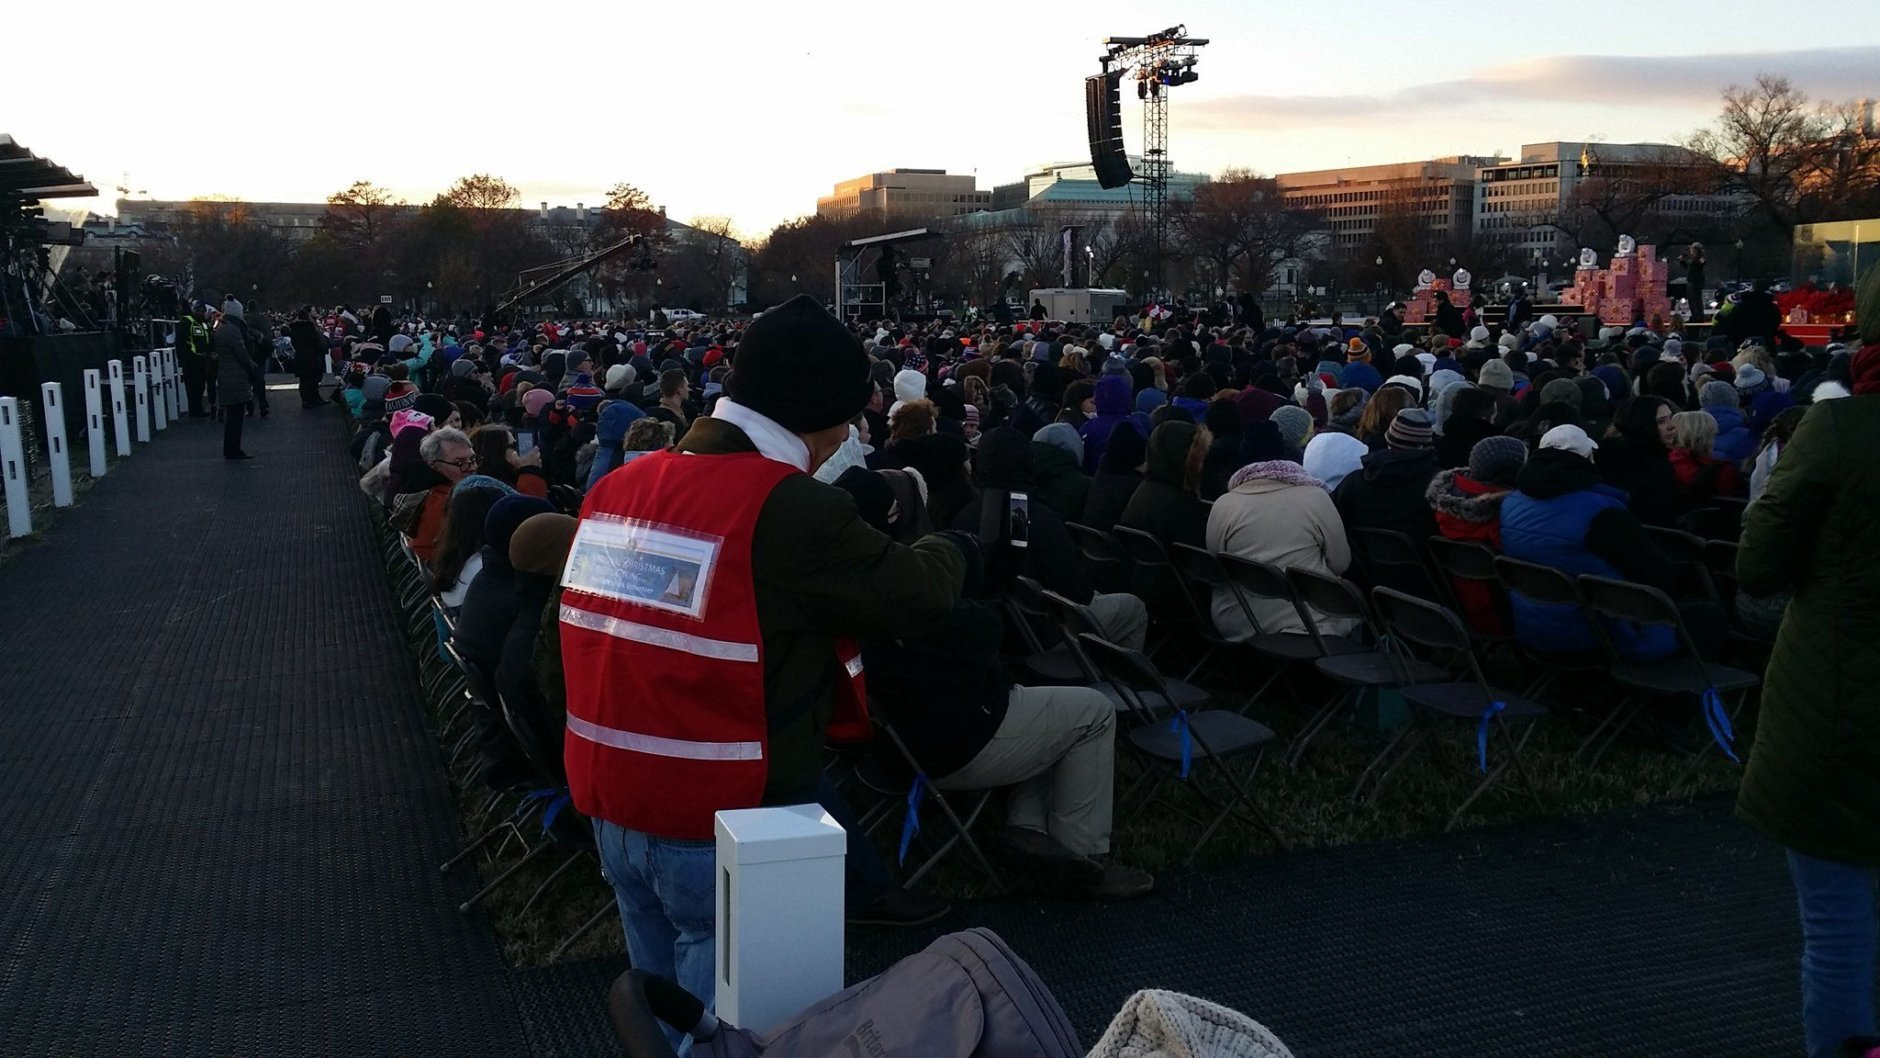 A festive crowd braved the chilly conditions for Wednesday's festivities. (WTOP/J. Brooks)